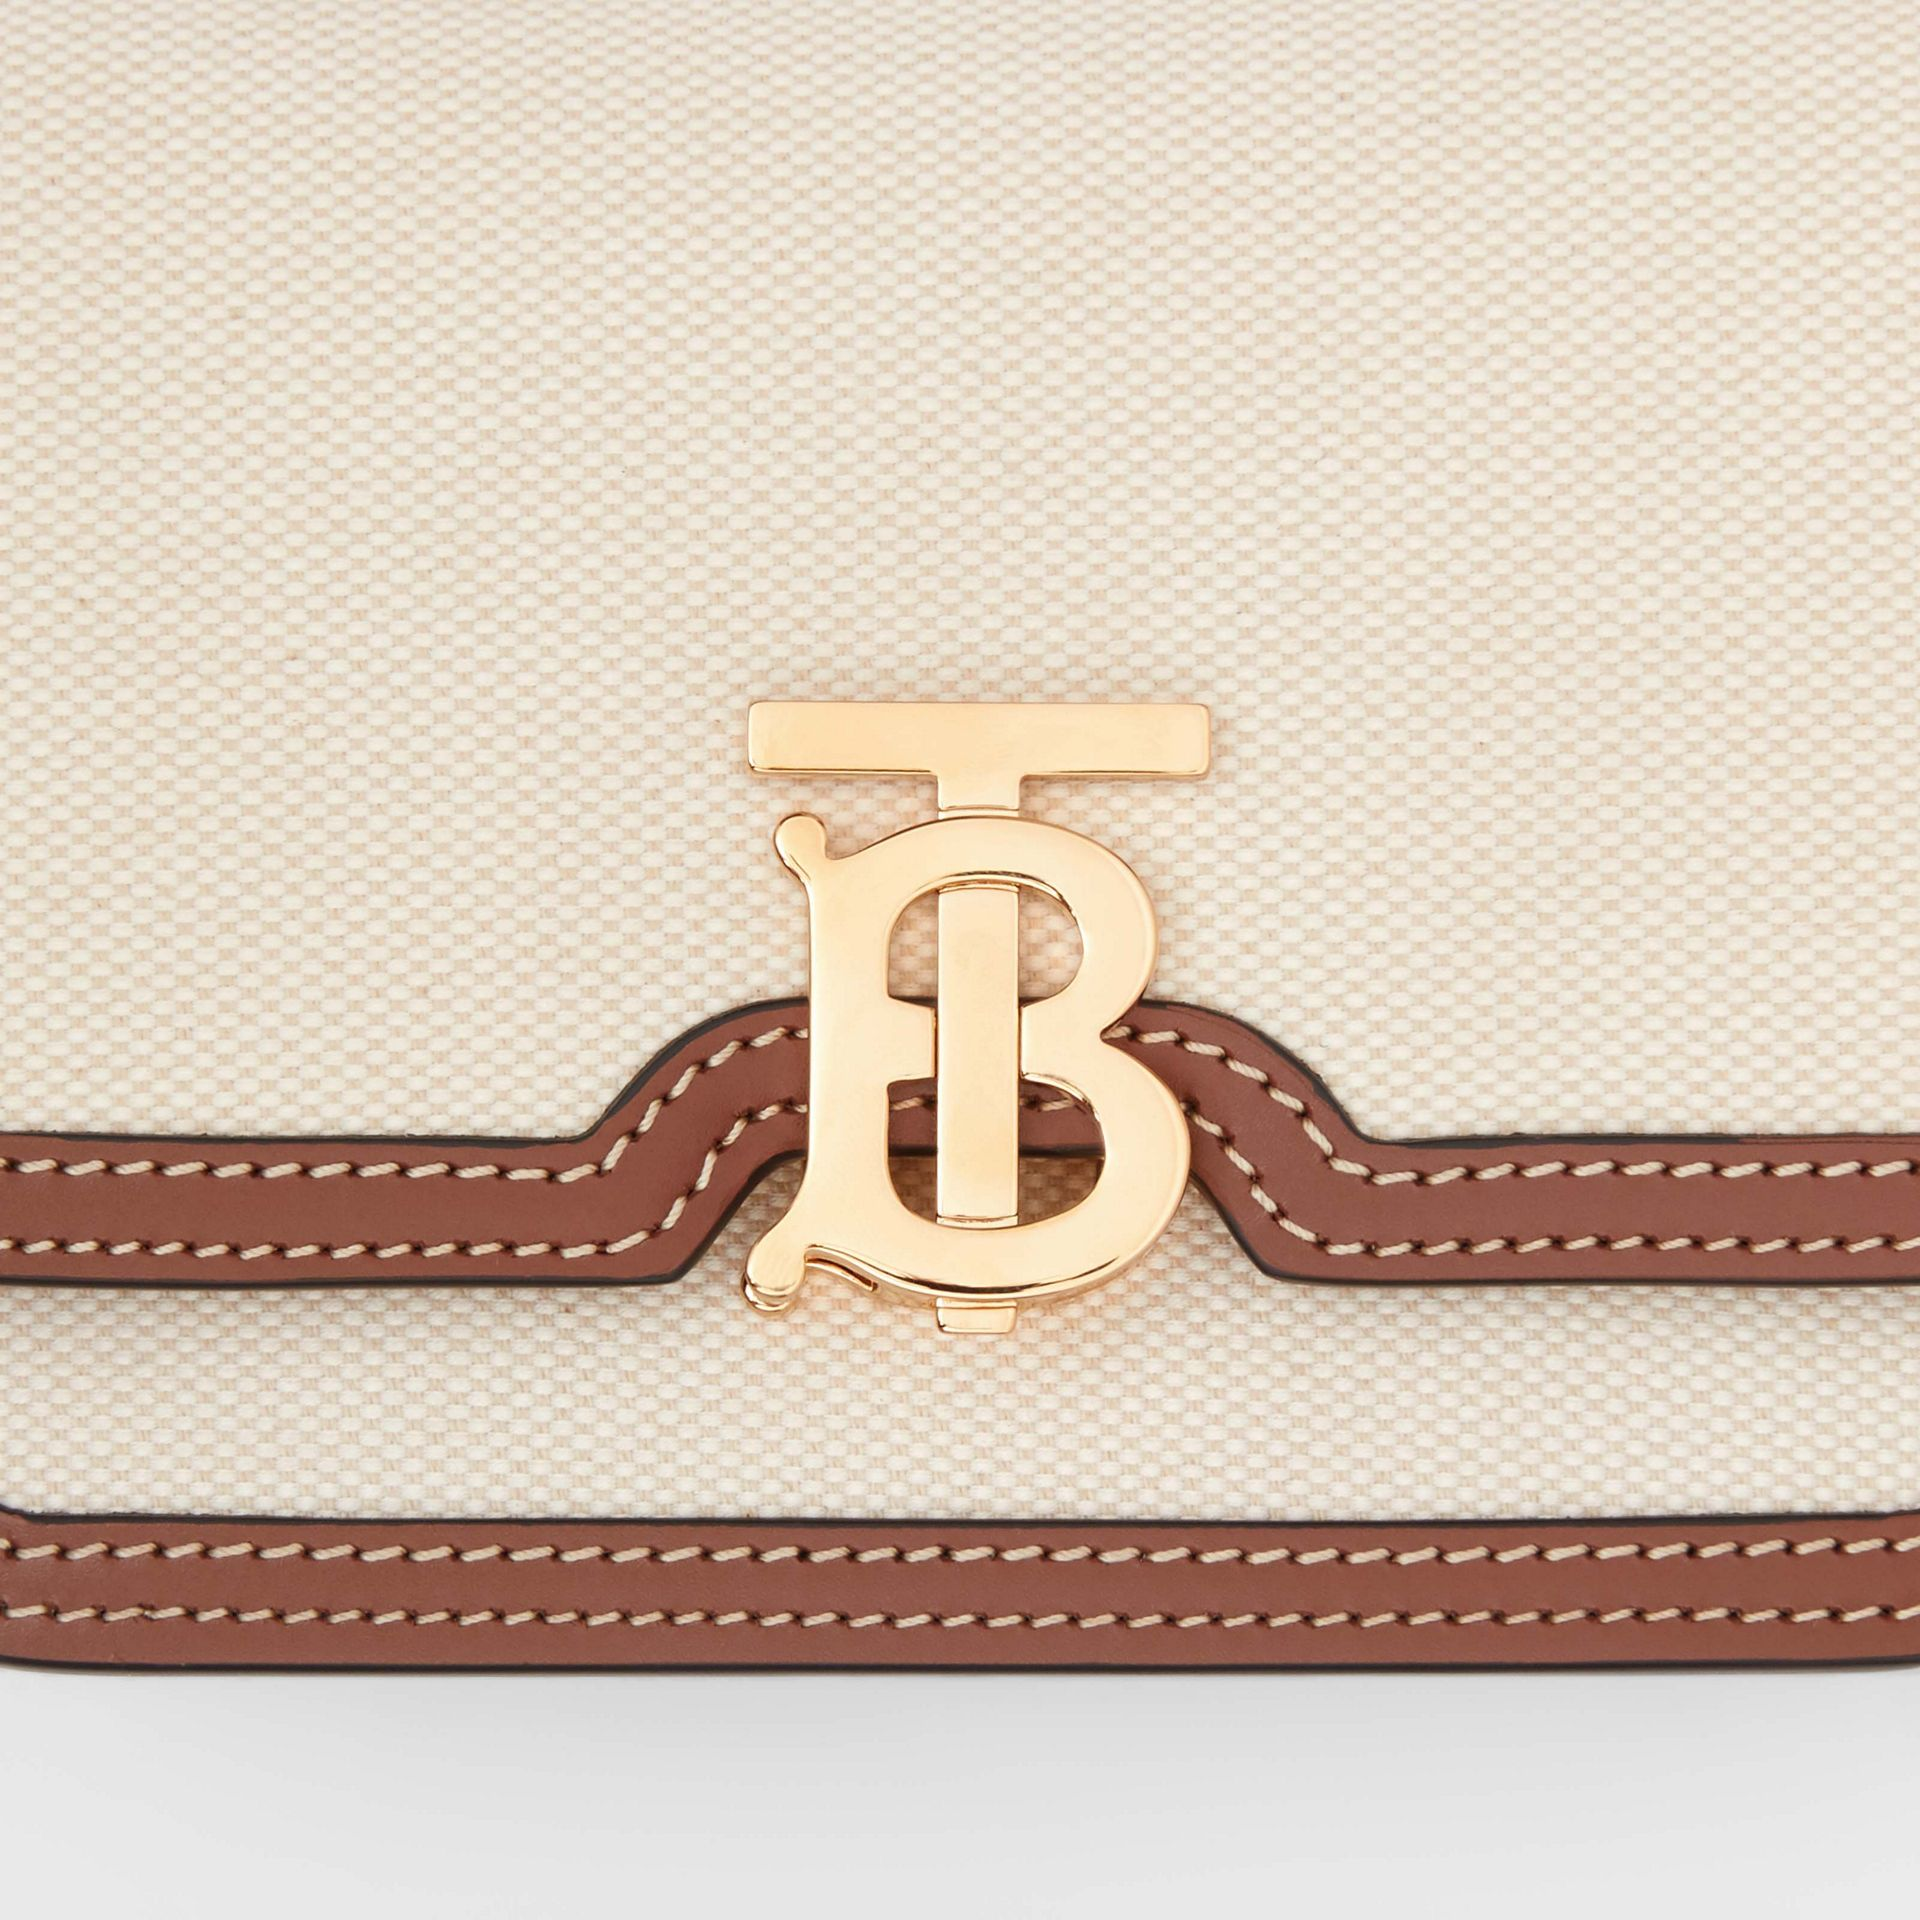 Mini Two-tone Canvas and Leather TB Bag in Natural/malt Brown - Women | Burberry Hong Kong S.A.R - gallery image 1